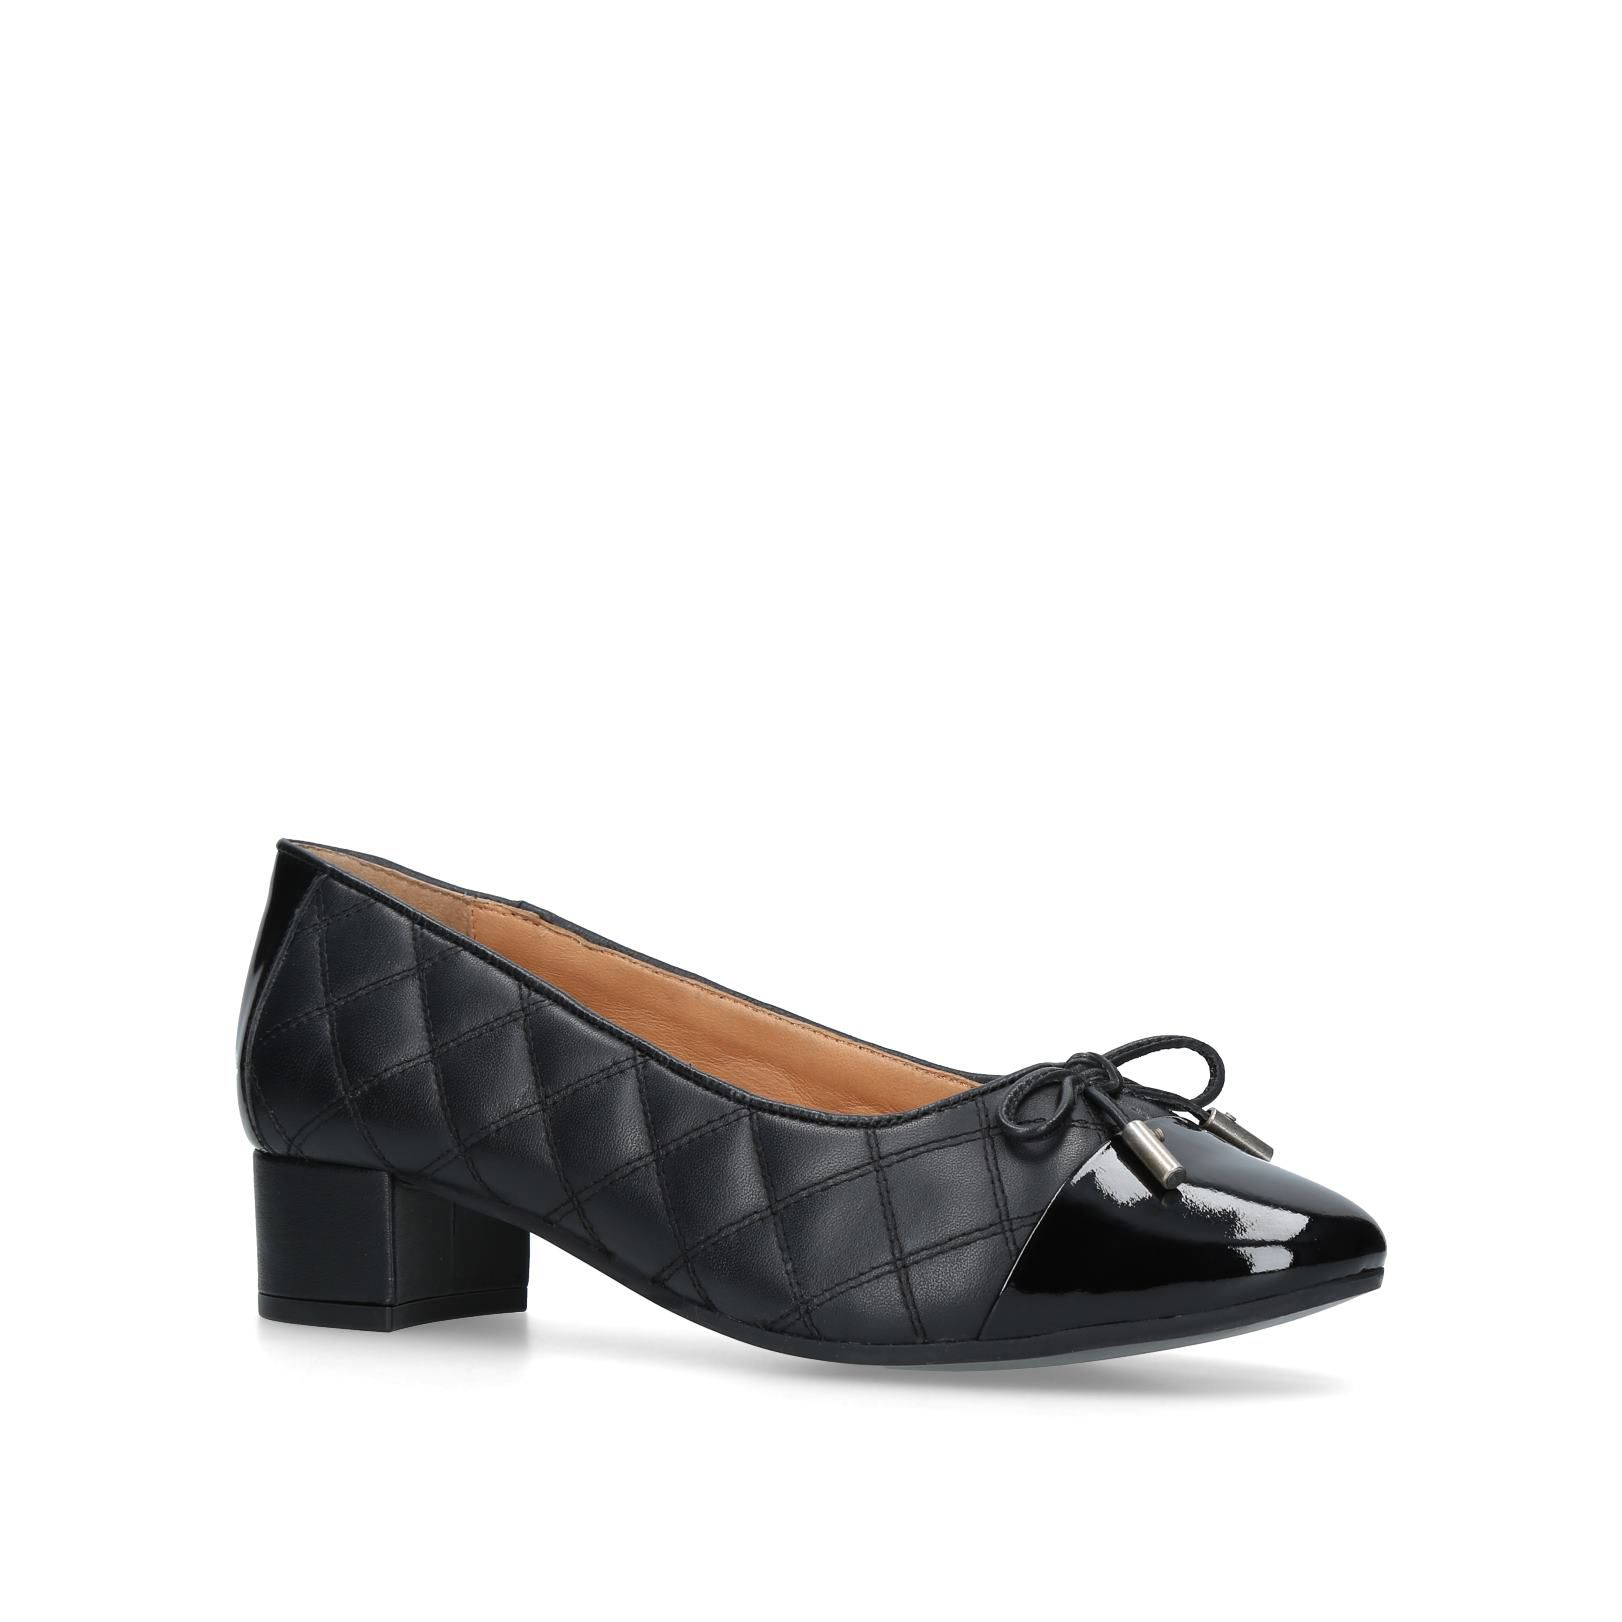 Carvela Comfort Alyssa Courts, Black